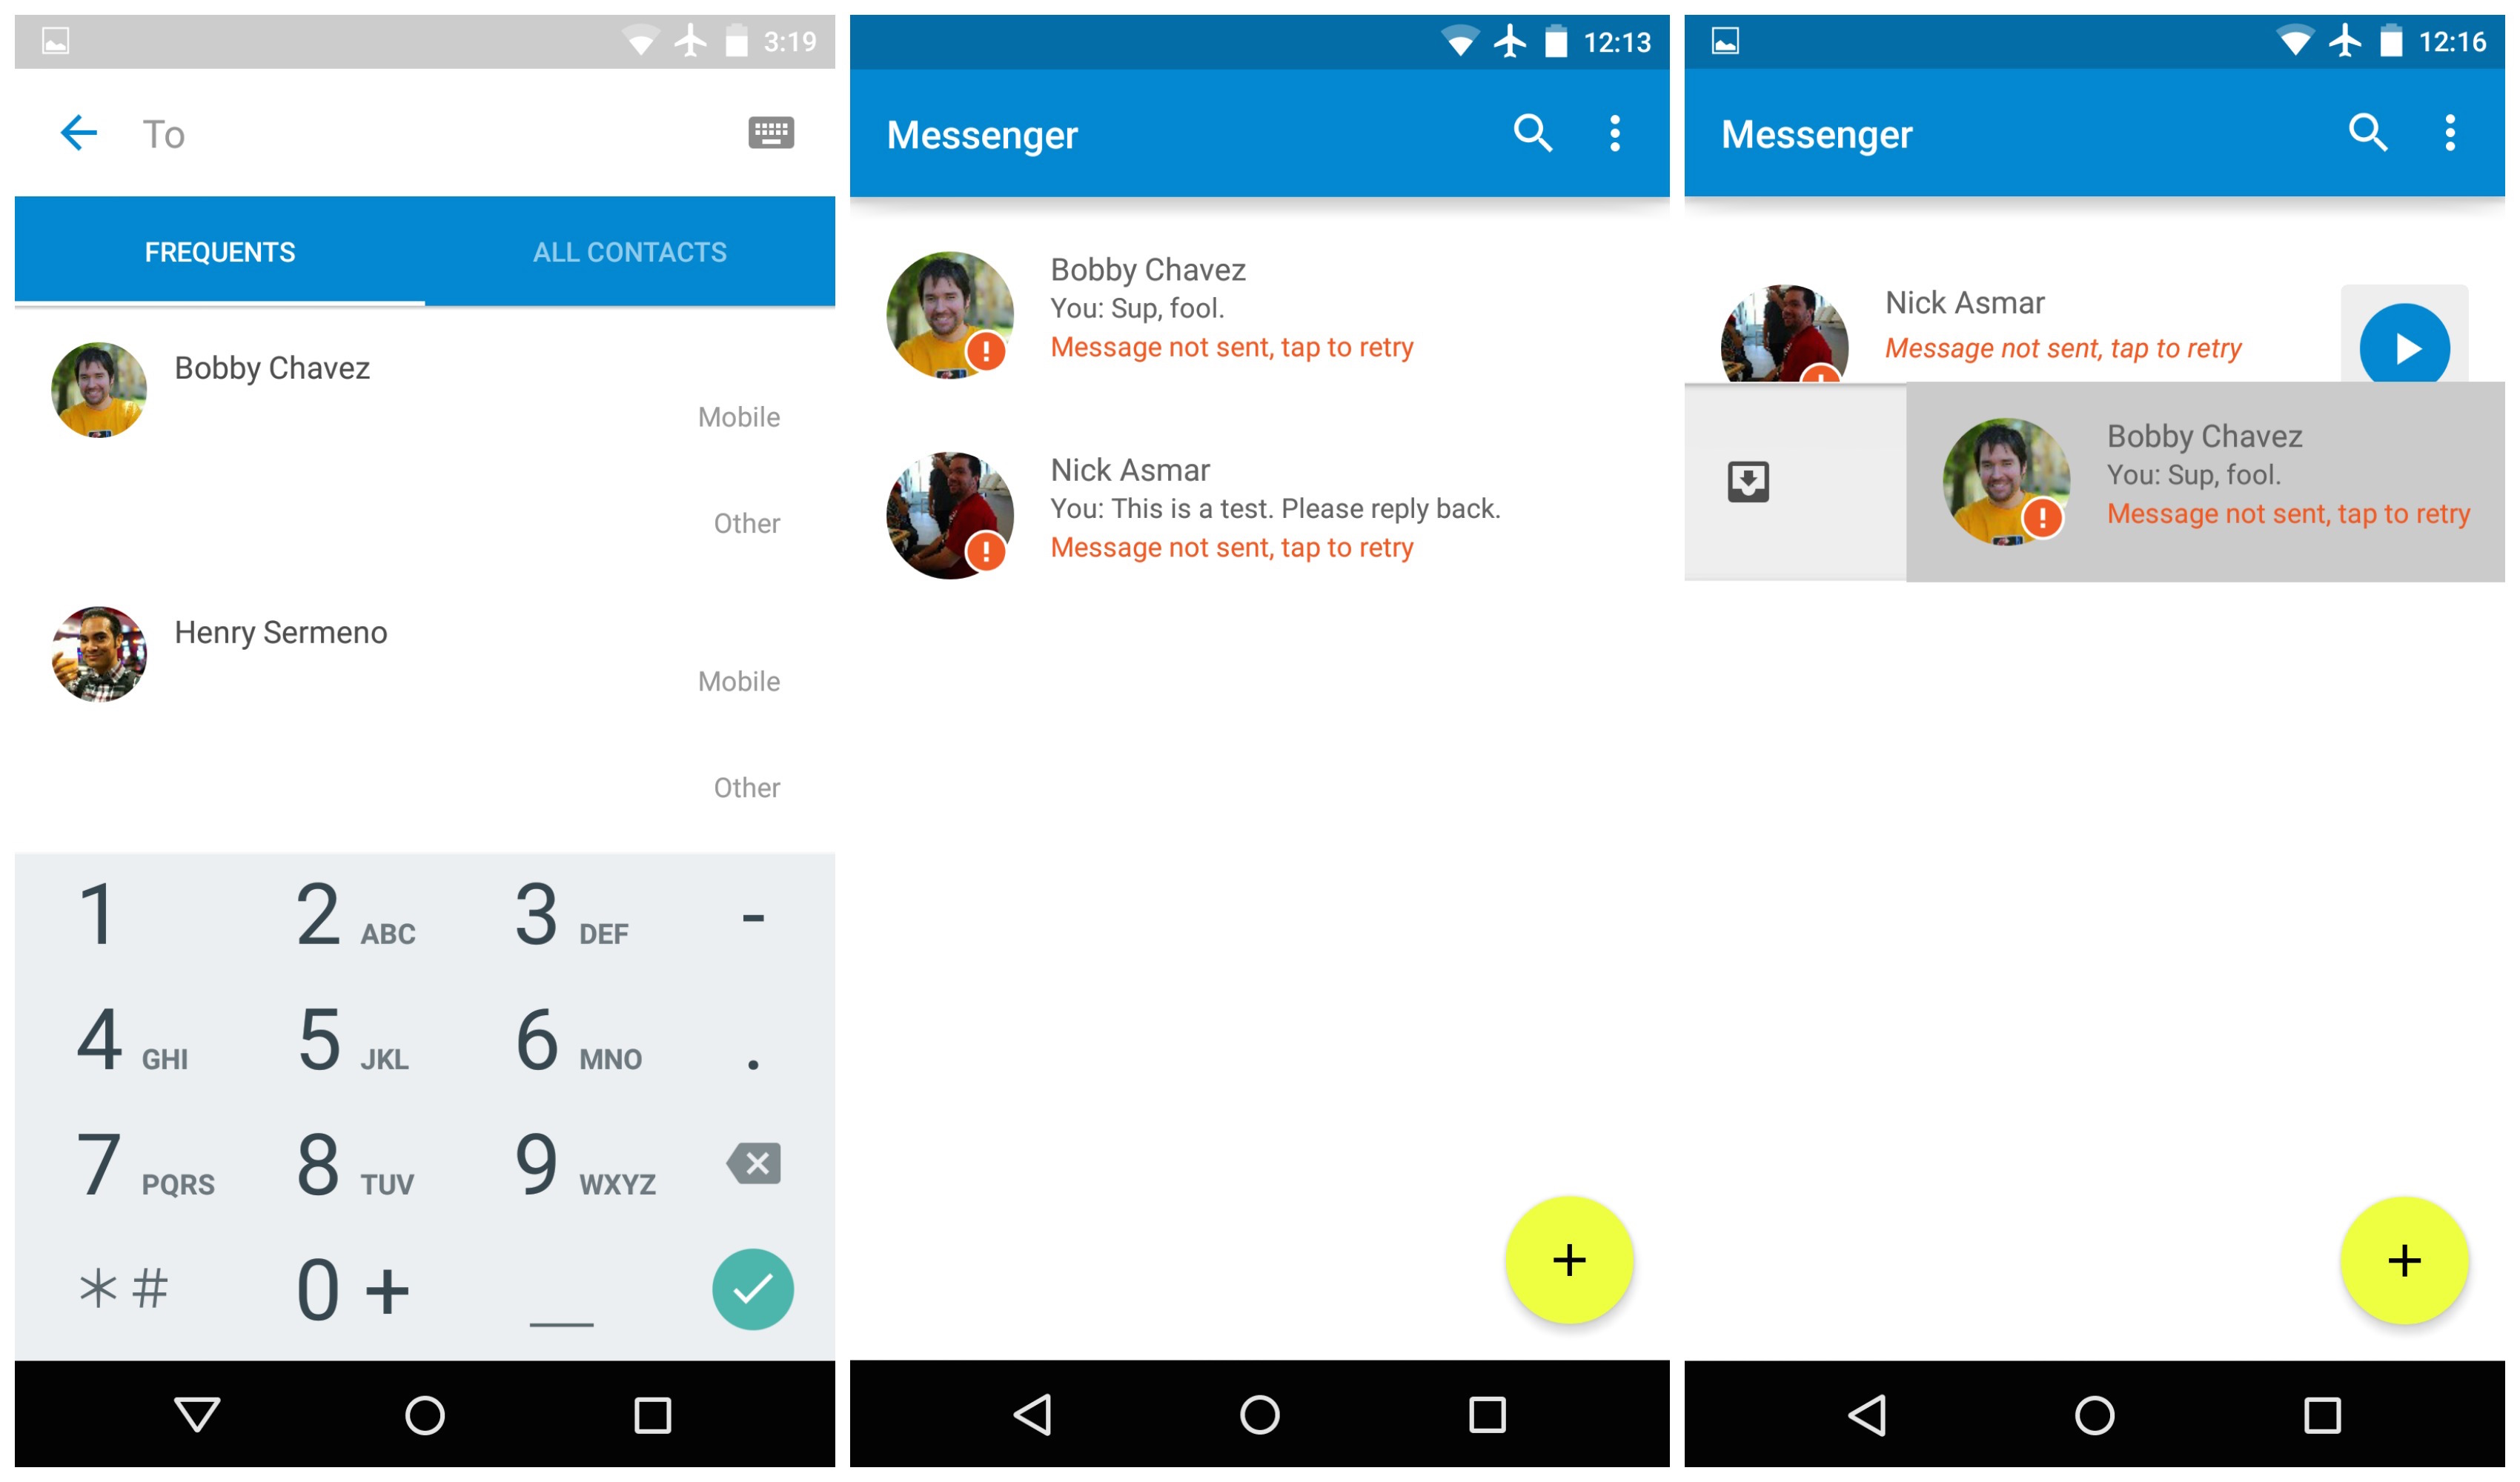 Android 5 0 1 lollipop and 5 0 2 update for nexus devices android - Android 5 0 Lollipop Messenger 1